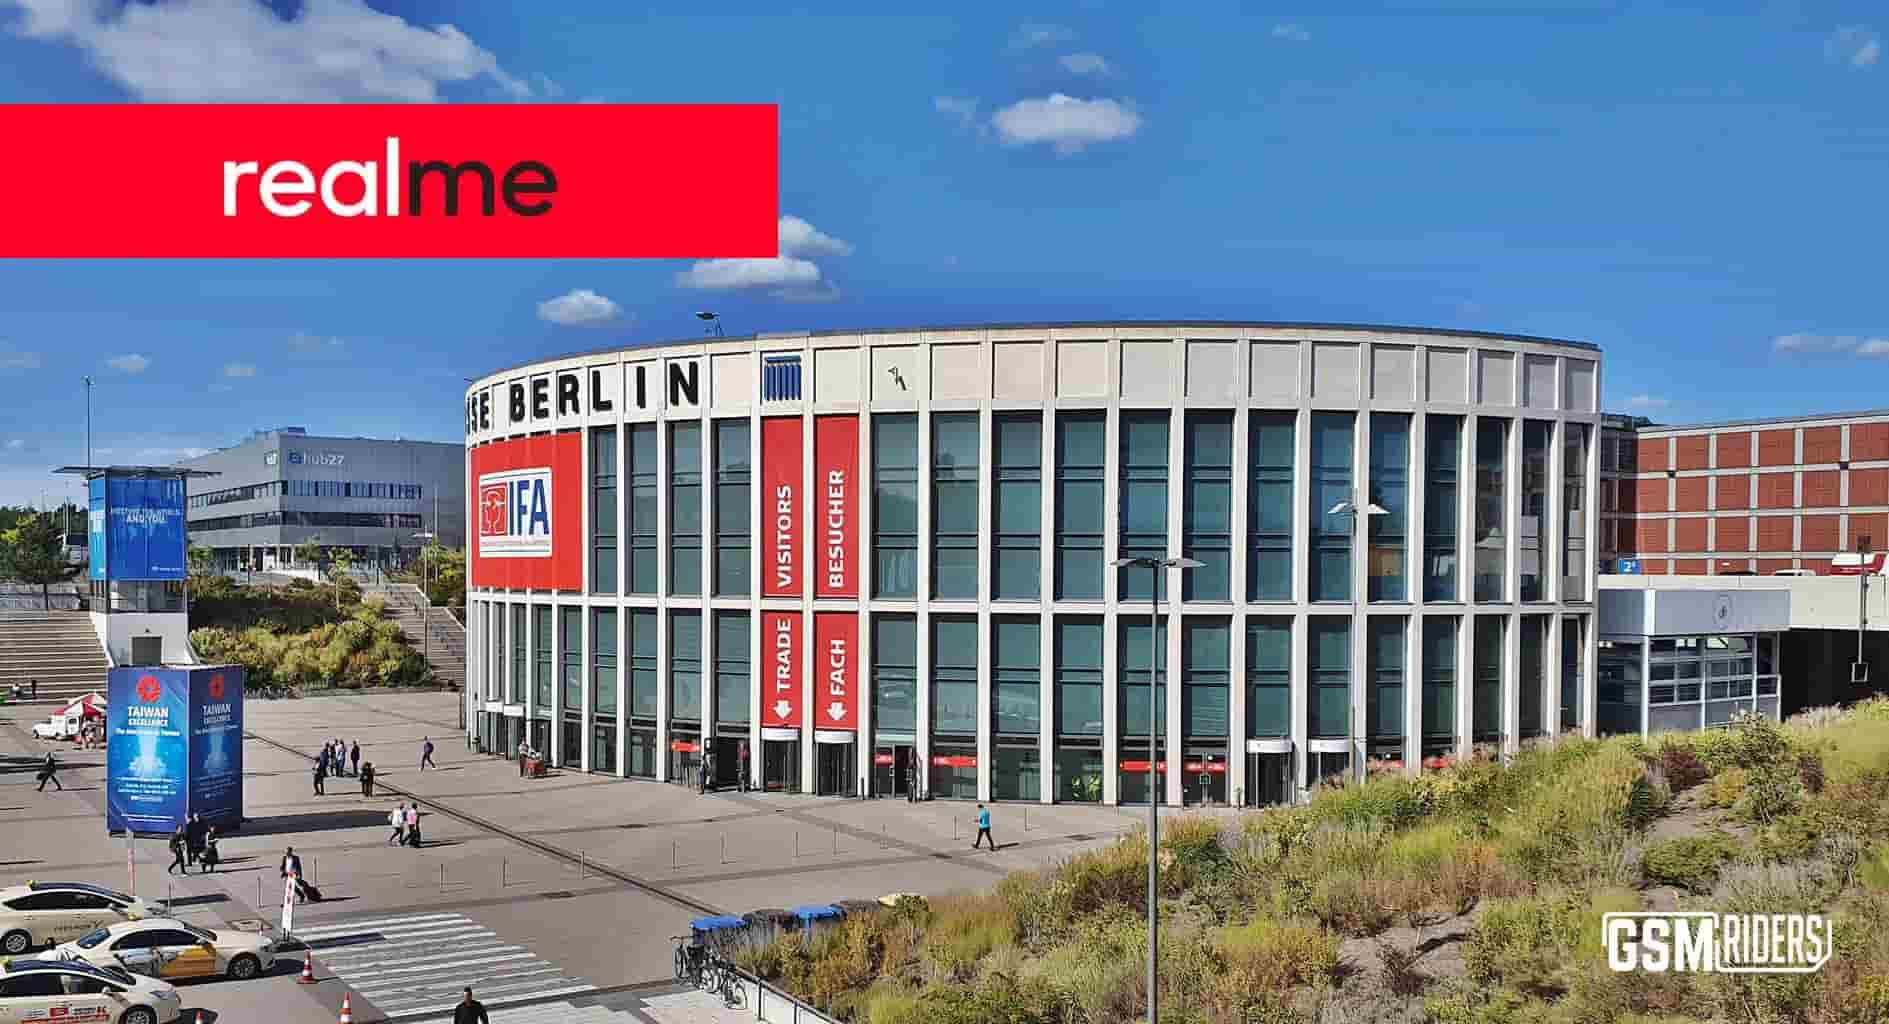 Realme for the first time at IFA Berlin